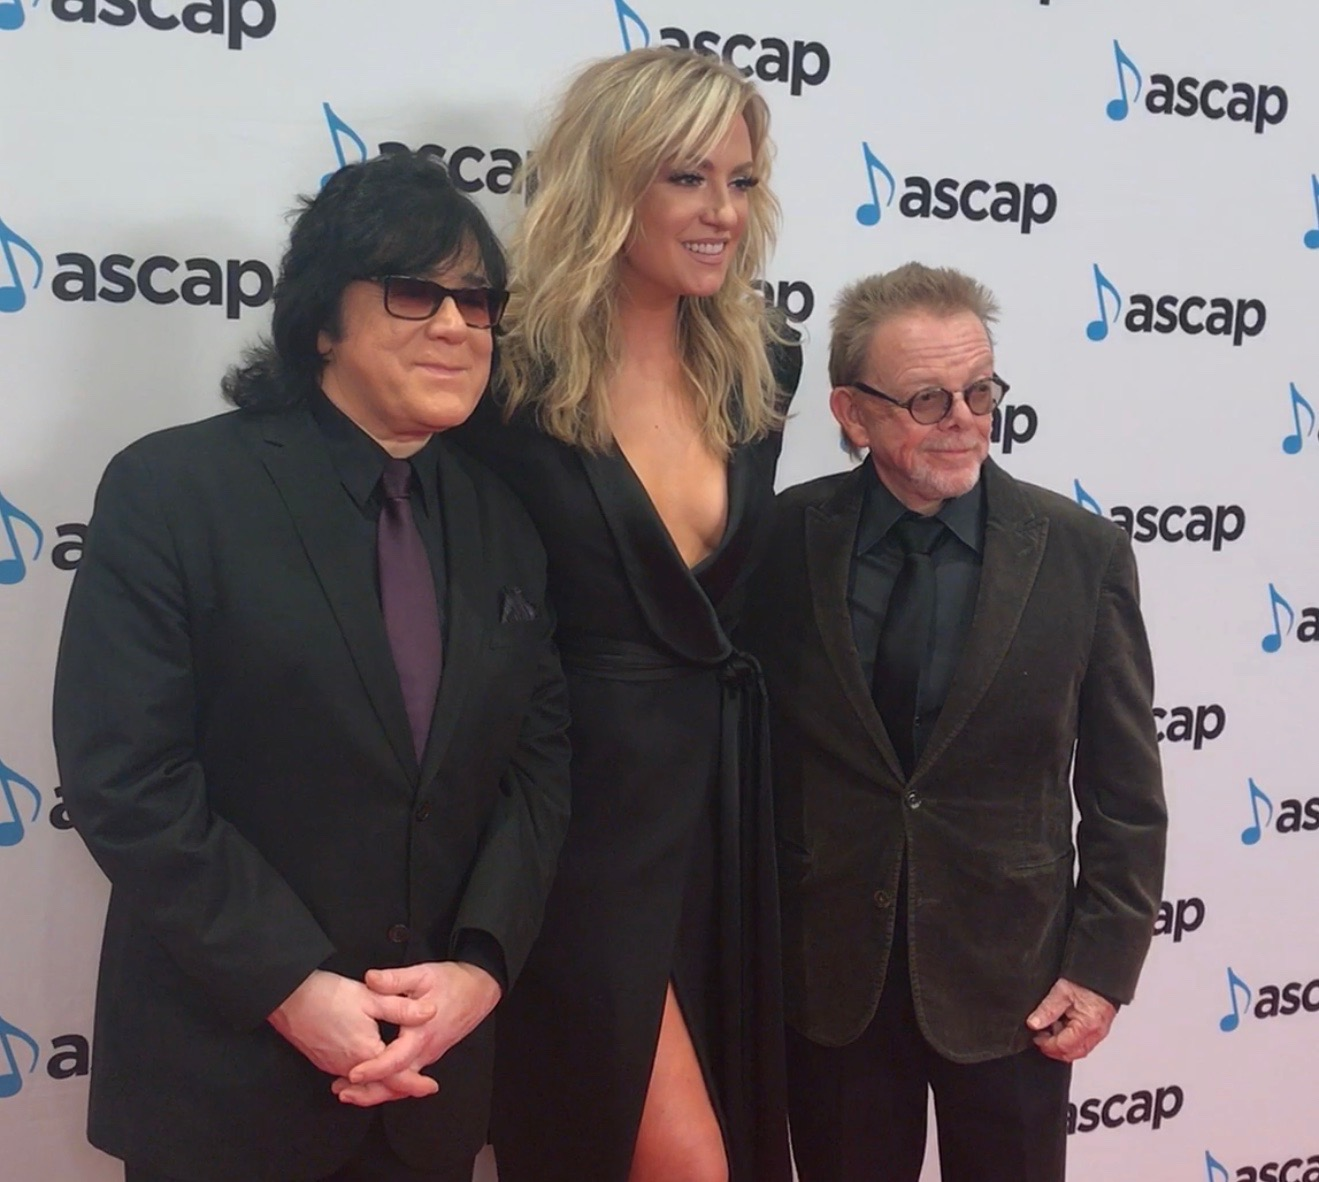 Clare Dunn with ASCAP's John Titta (L) and Paul Williams (R)